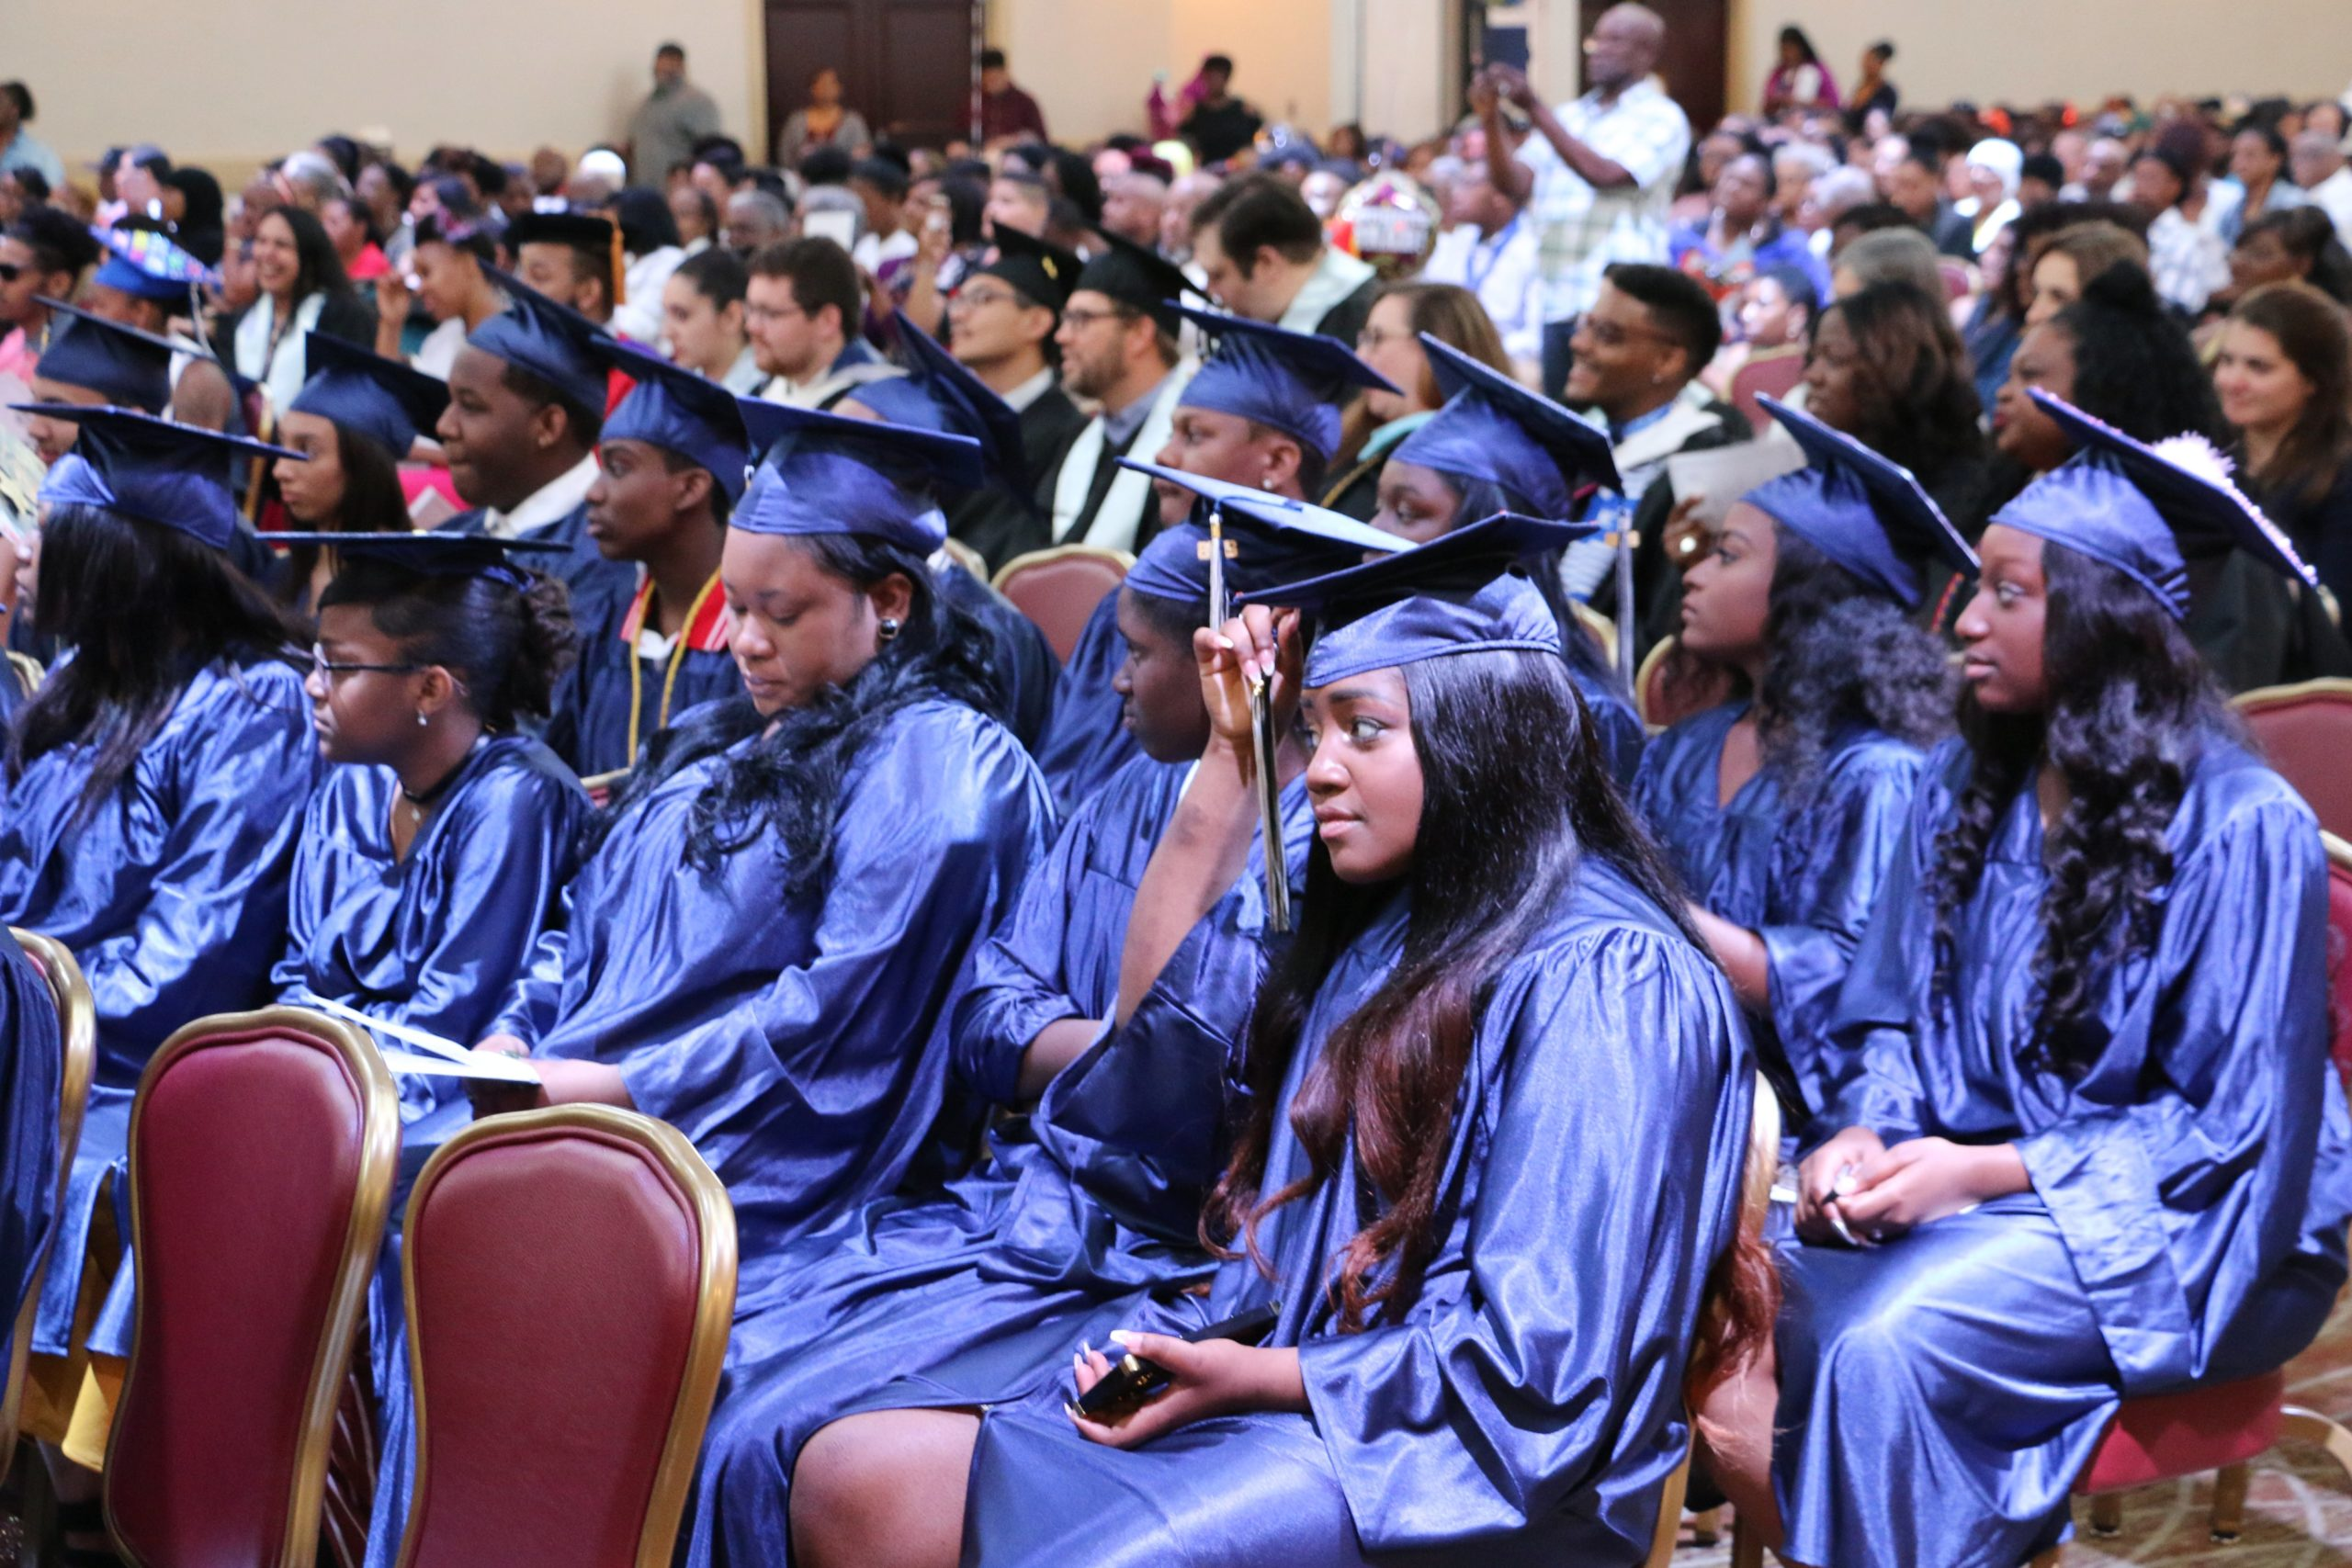 Students at KIPP Newark Collegiate Academy's graduation ceremonies in June 2018. This year's graduation events could be disrupted by the coronavirus pandemic.